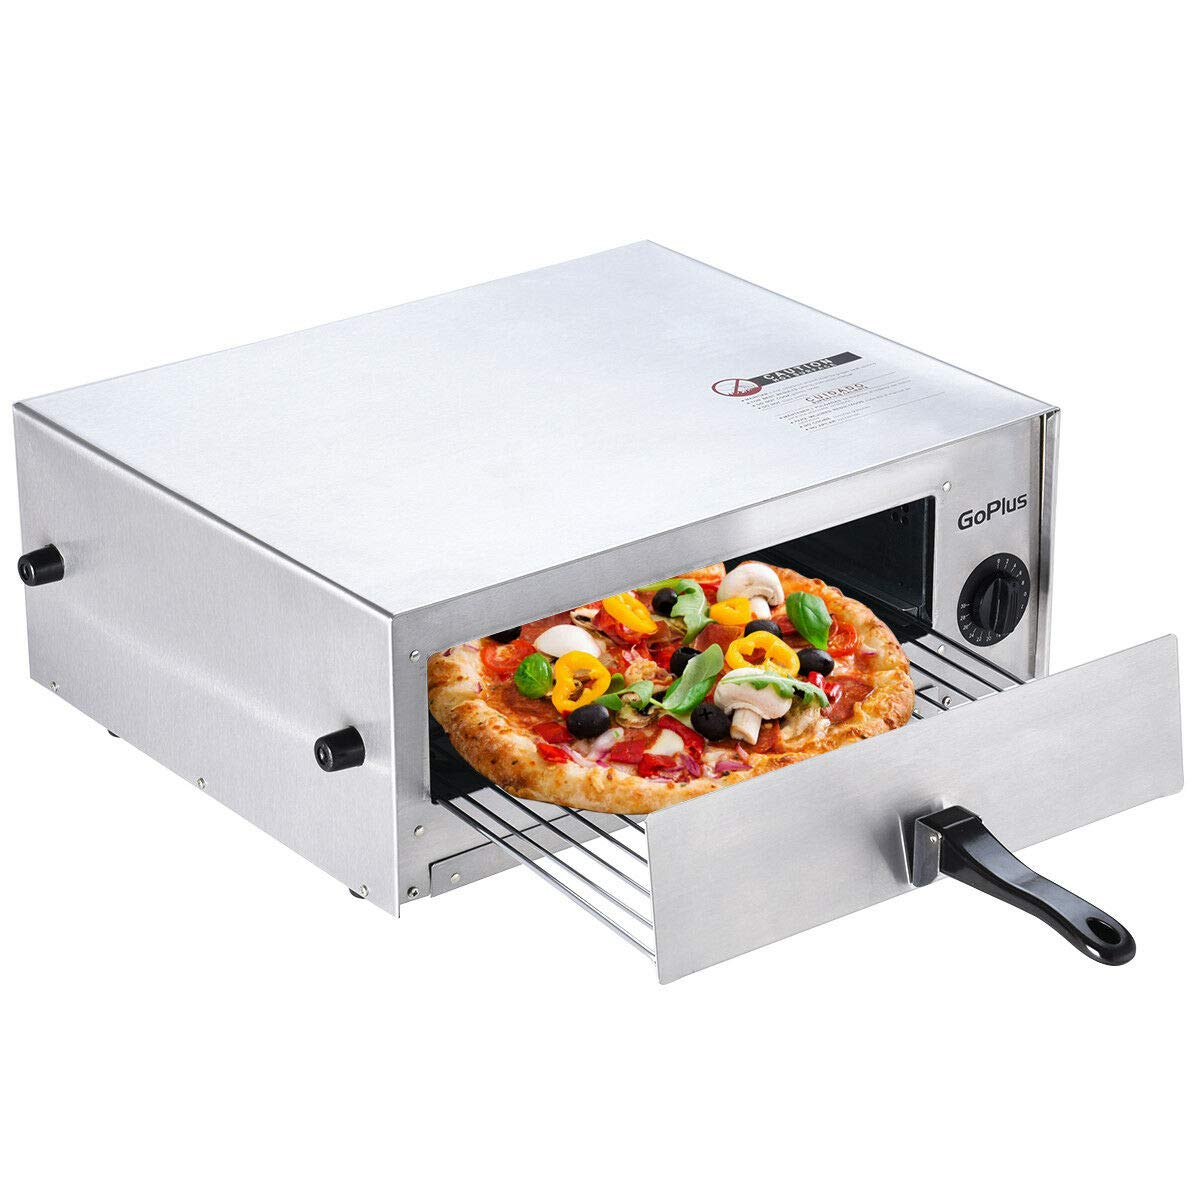 Goplus Pizza Oven, Stainless Steel Pizza Maker Machine, Pizza Baker W/Snack Pan, Snack Maker, Counter Top, for Commercial and Home (Silver)